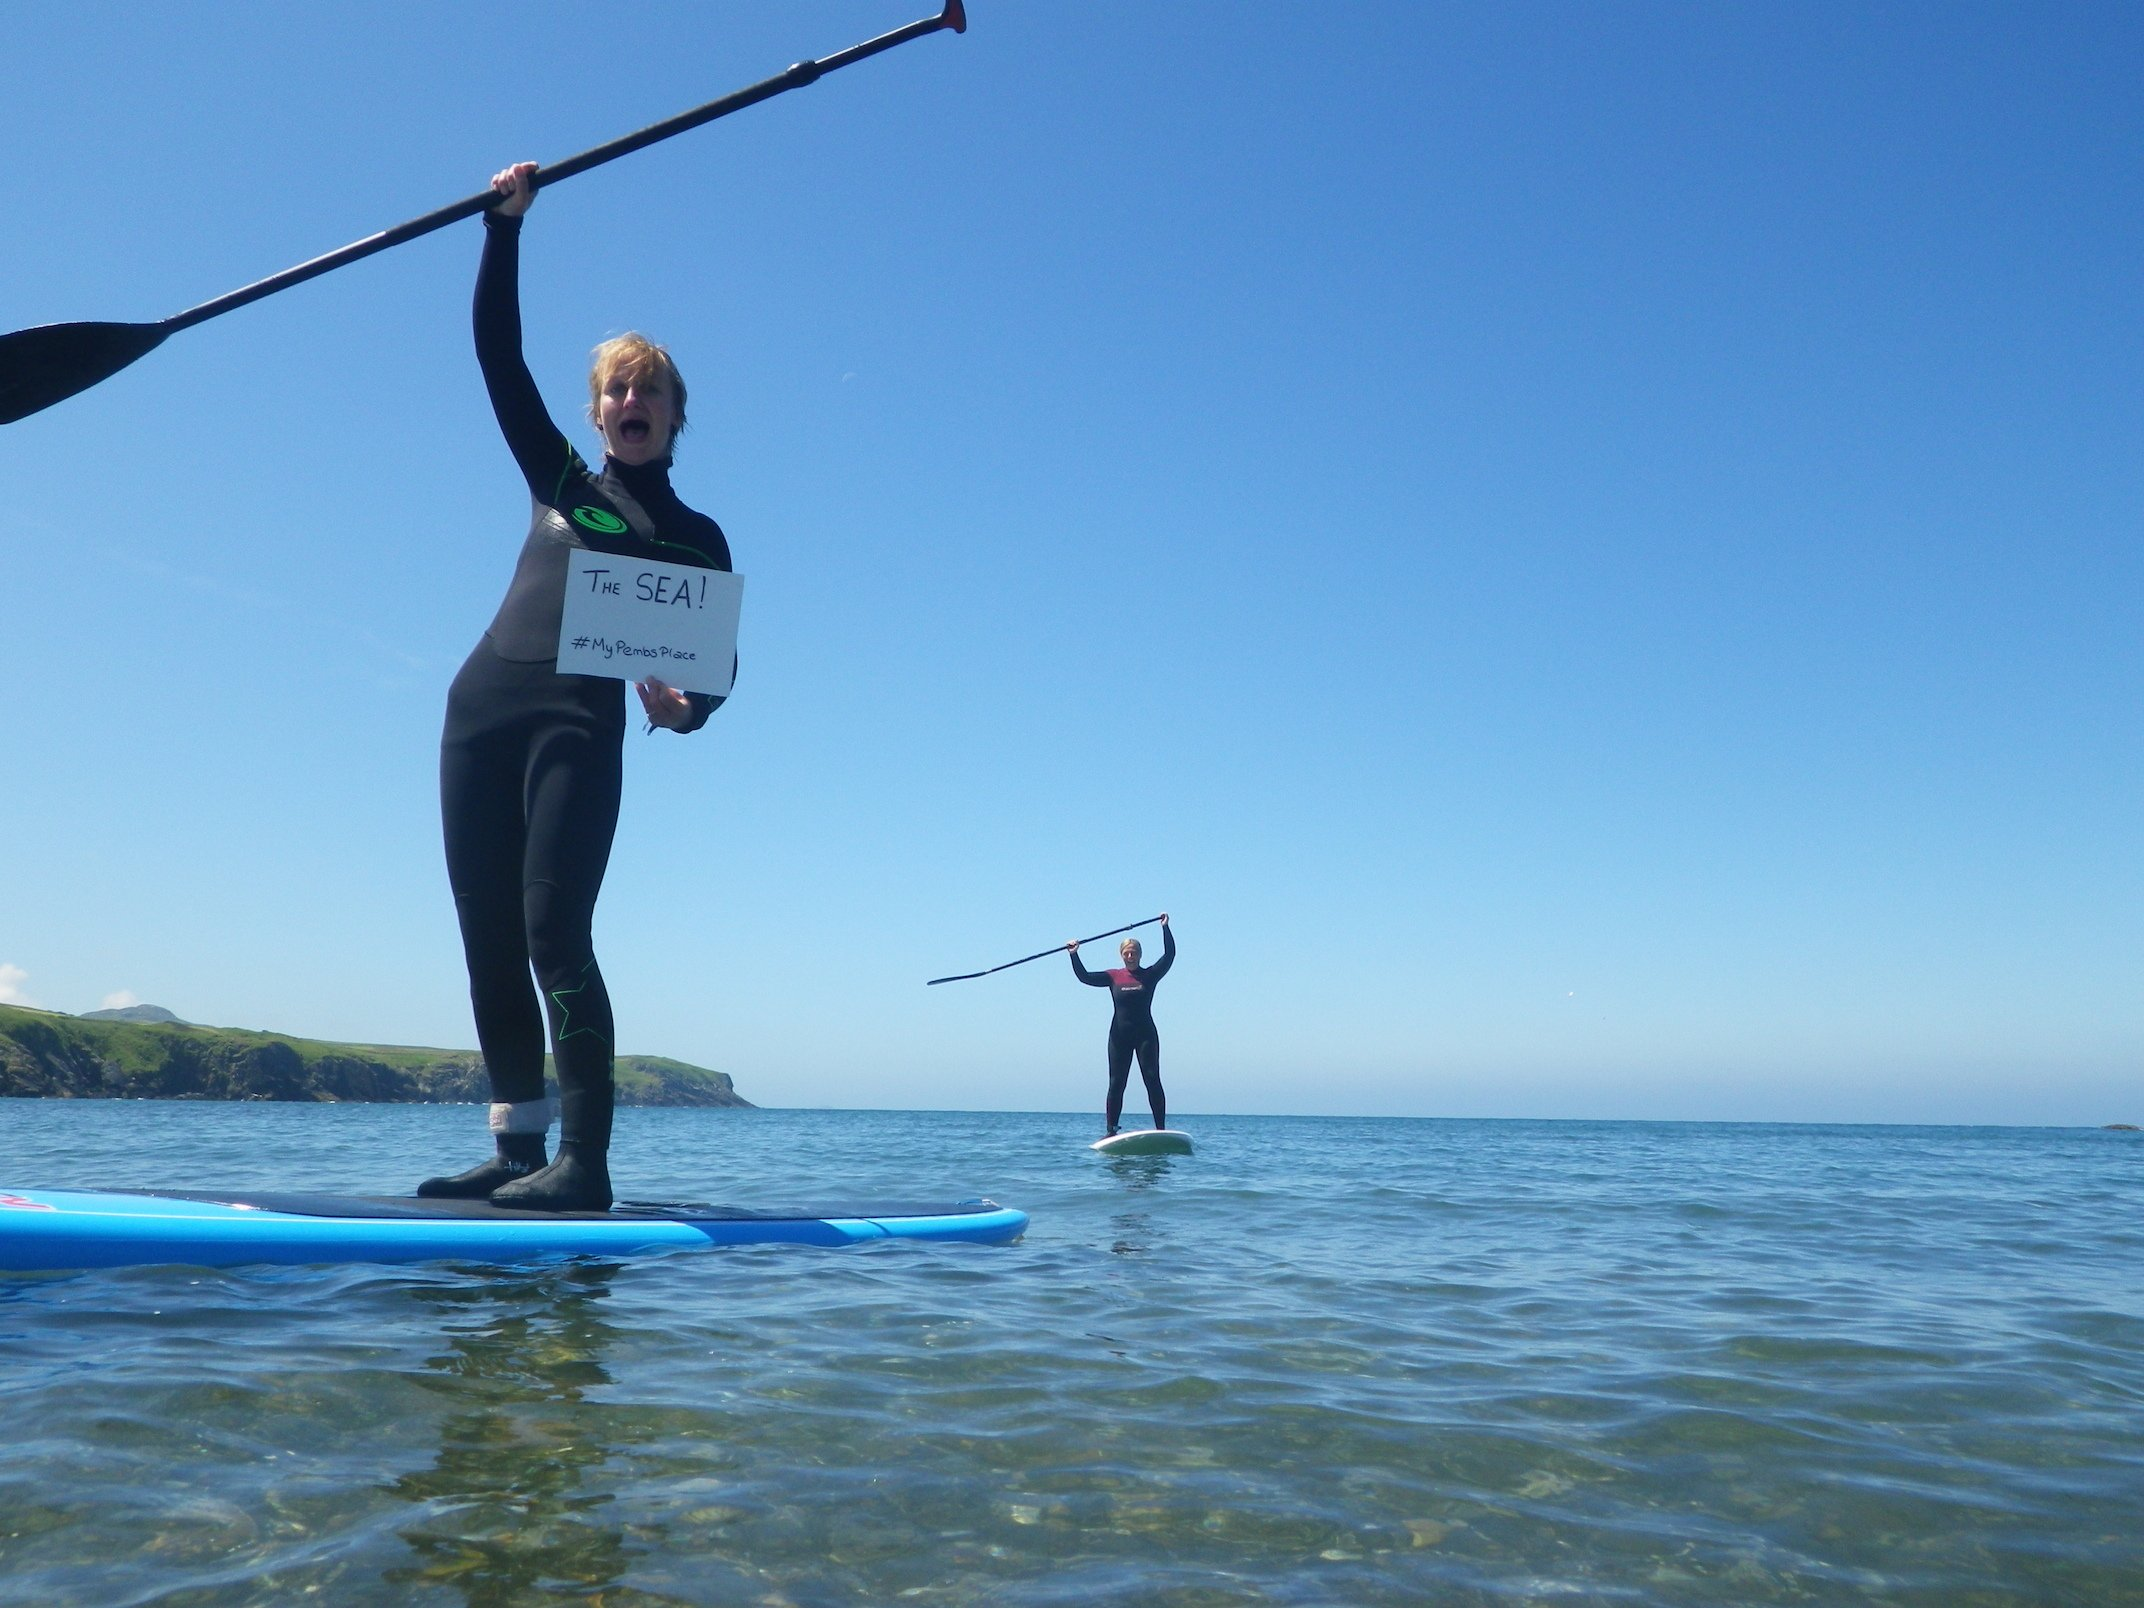 MyPembsPlace – Paddleboarding in the Sea